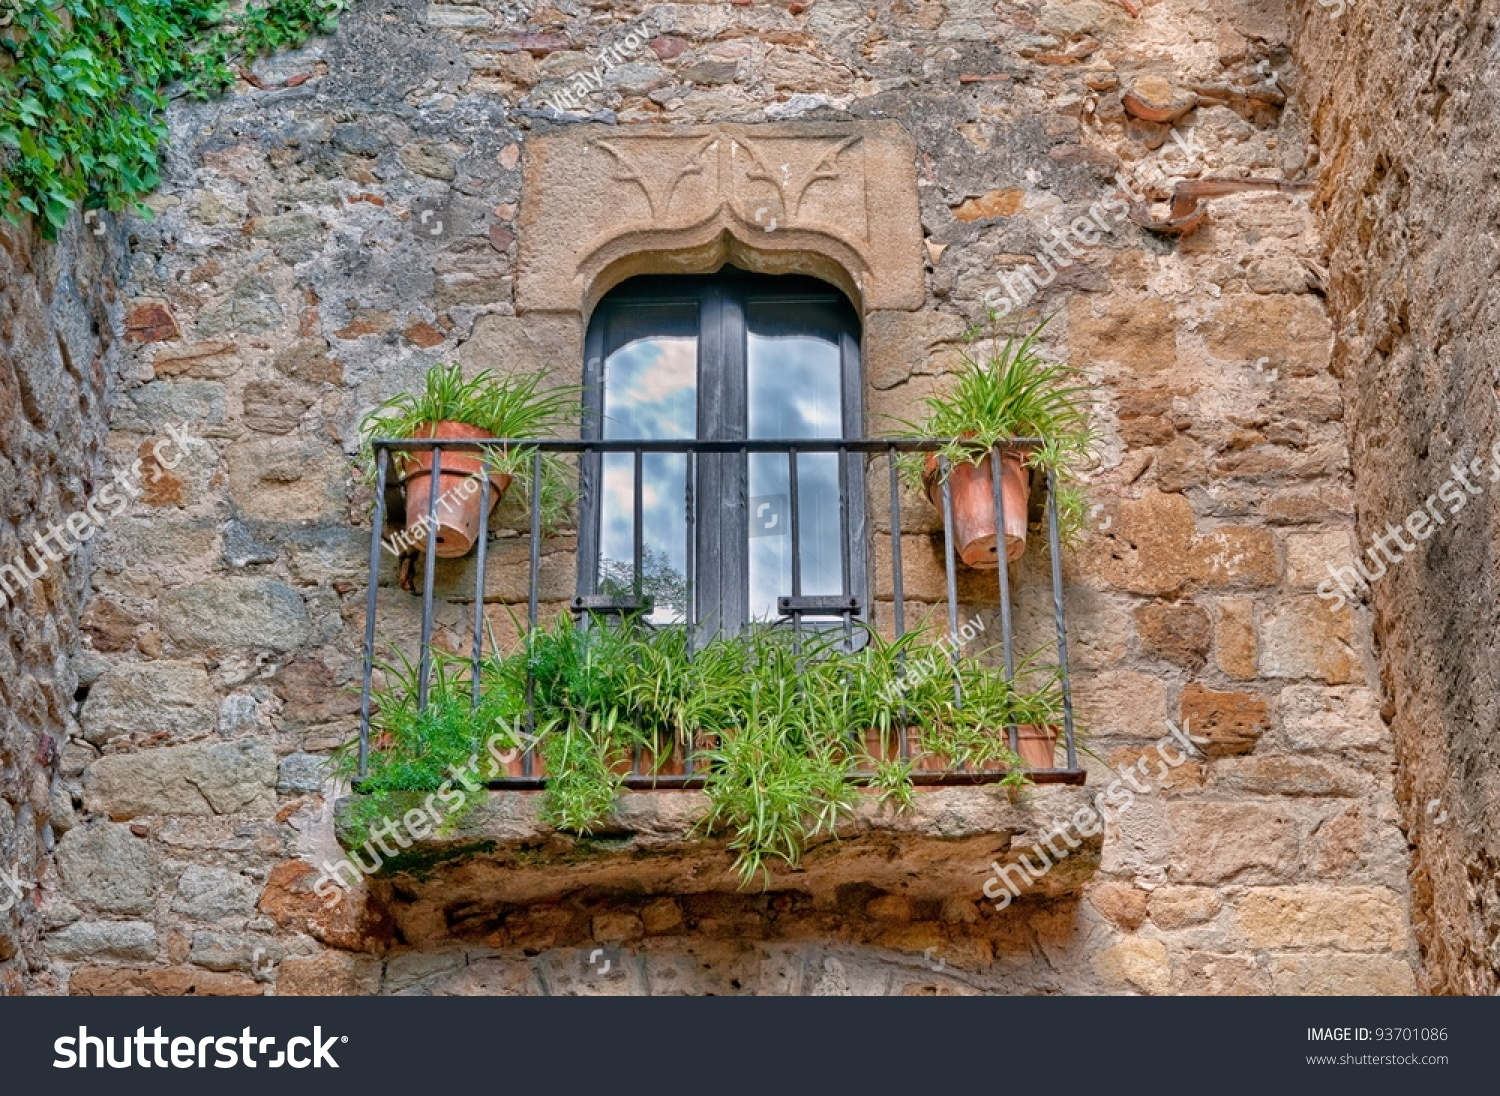 Balcony In Marble Wall : Small balcony with flowers on a stone wall in peratallada